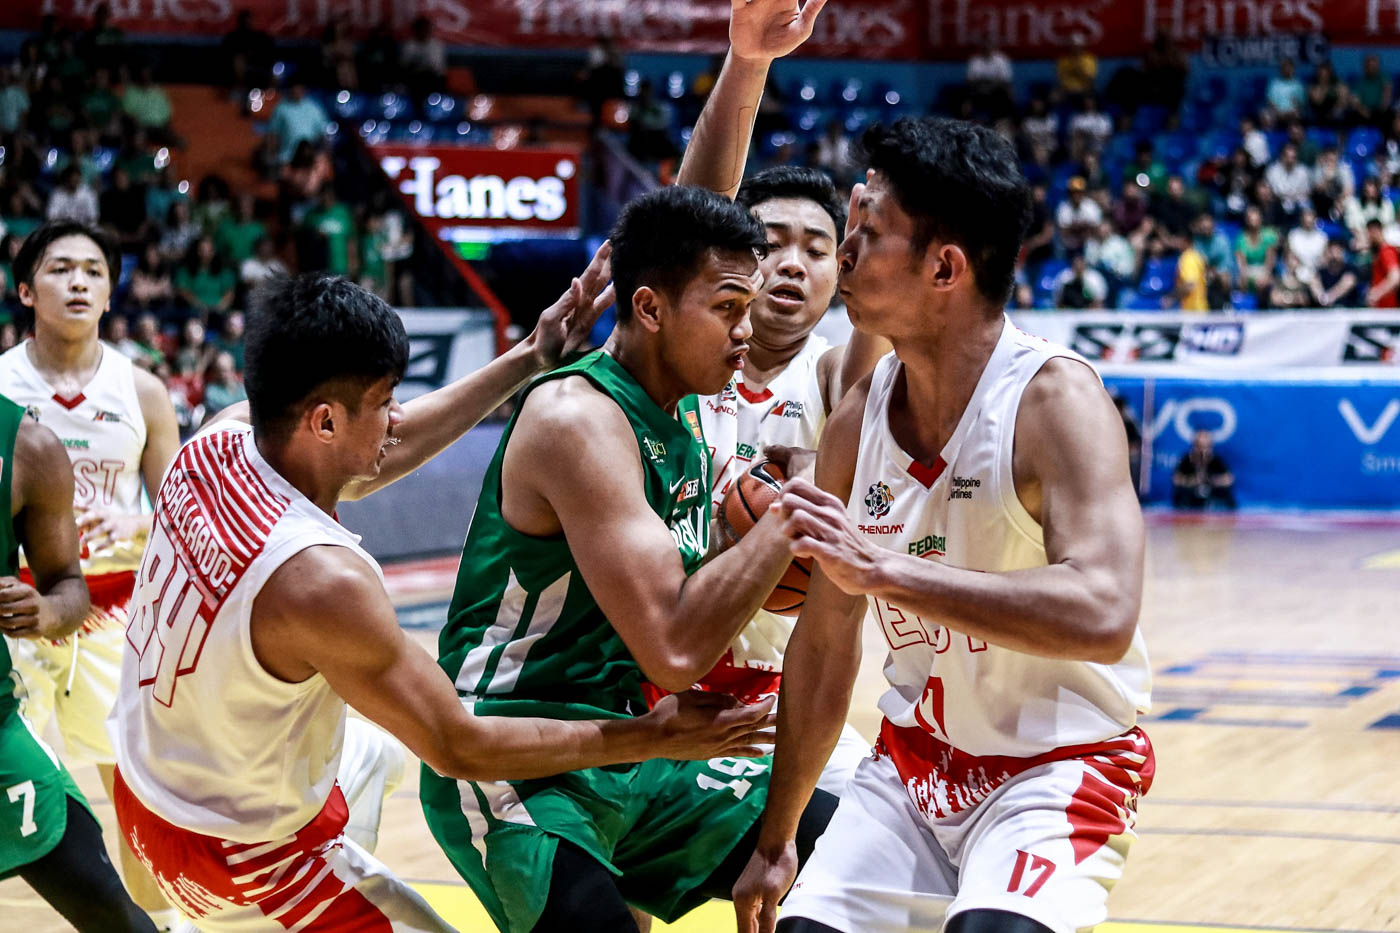 La Salle silences UE for 2nd UAAP triumph